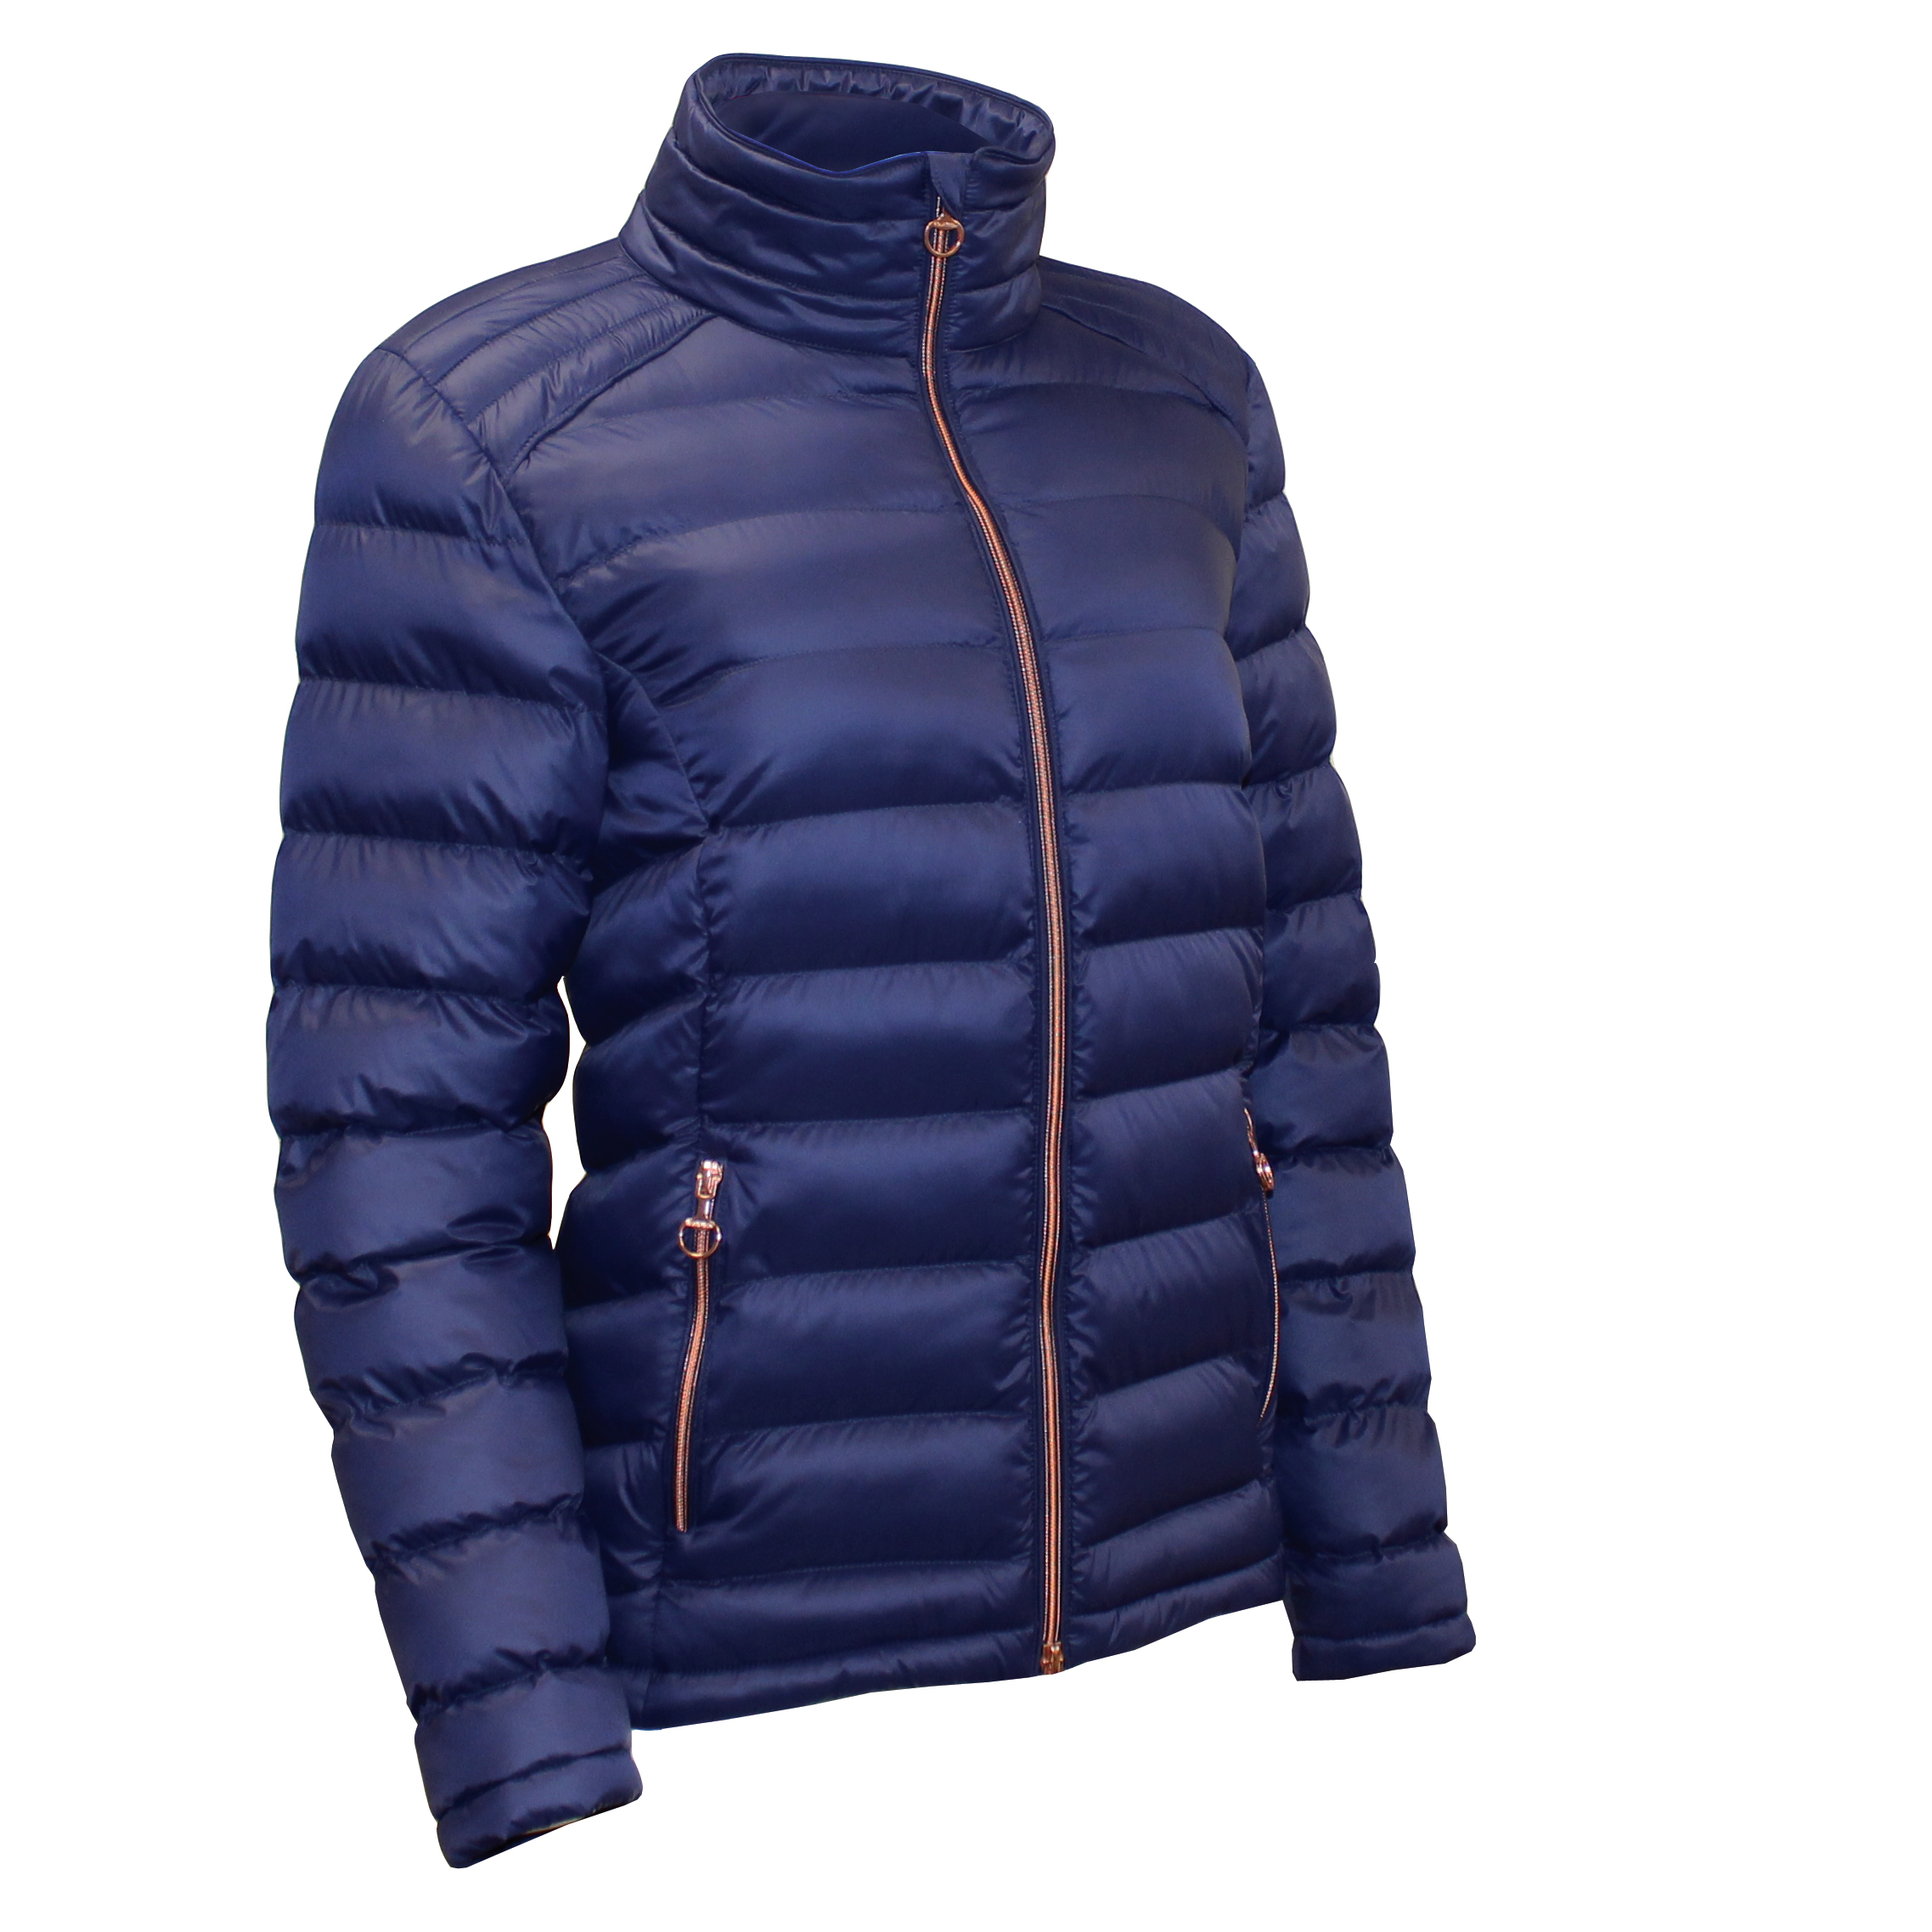 Equetech Quest Micro-Quilt Jacket